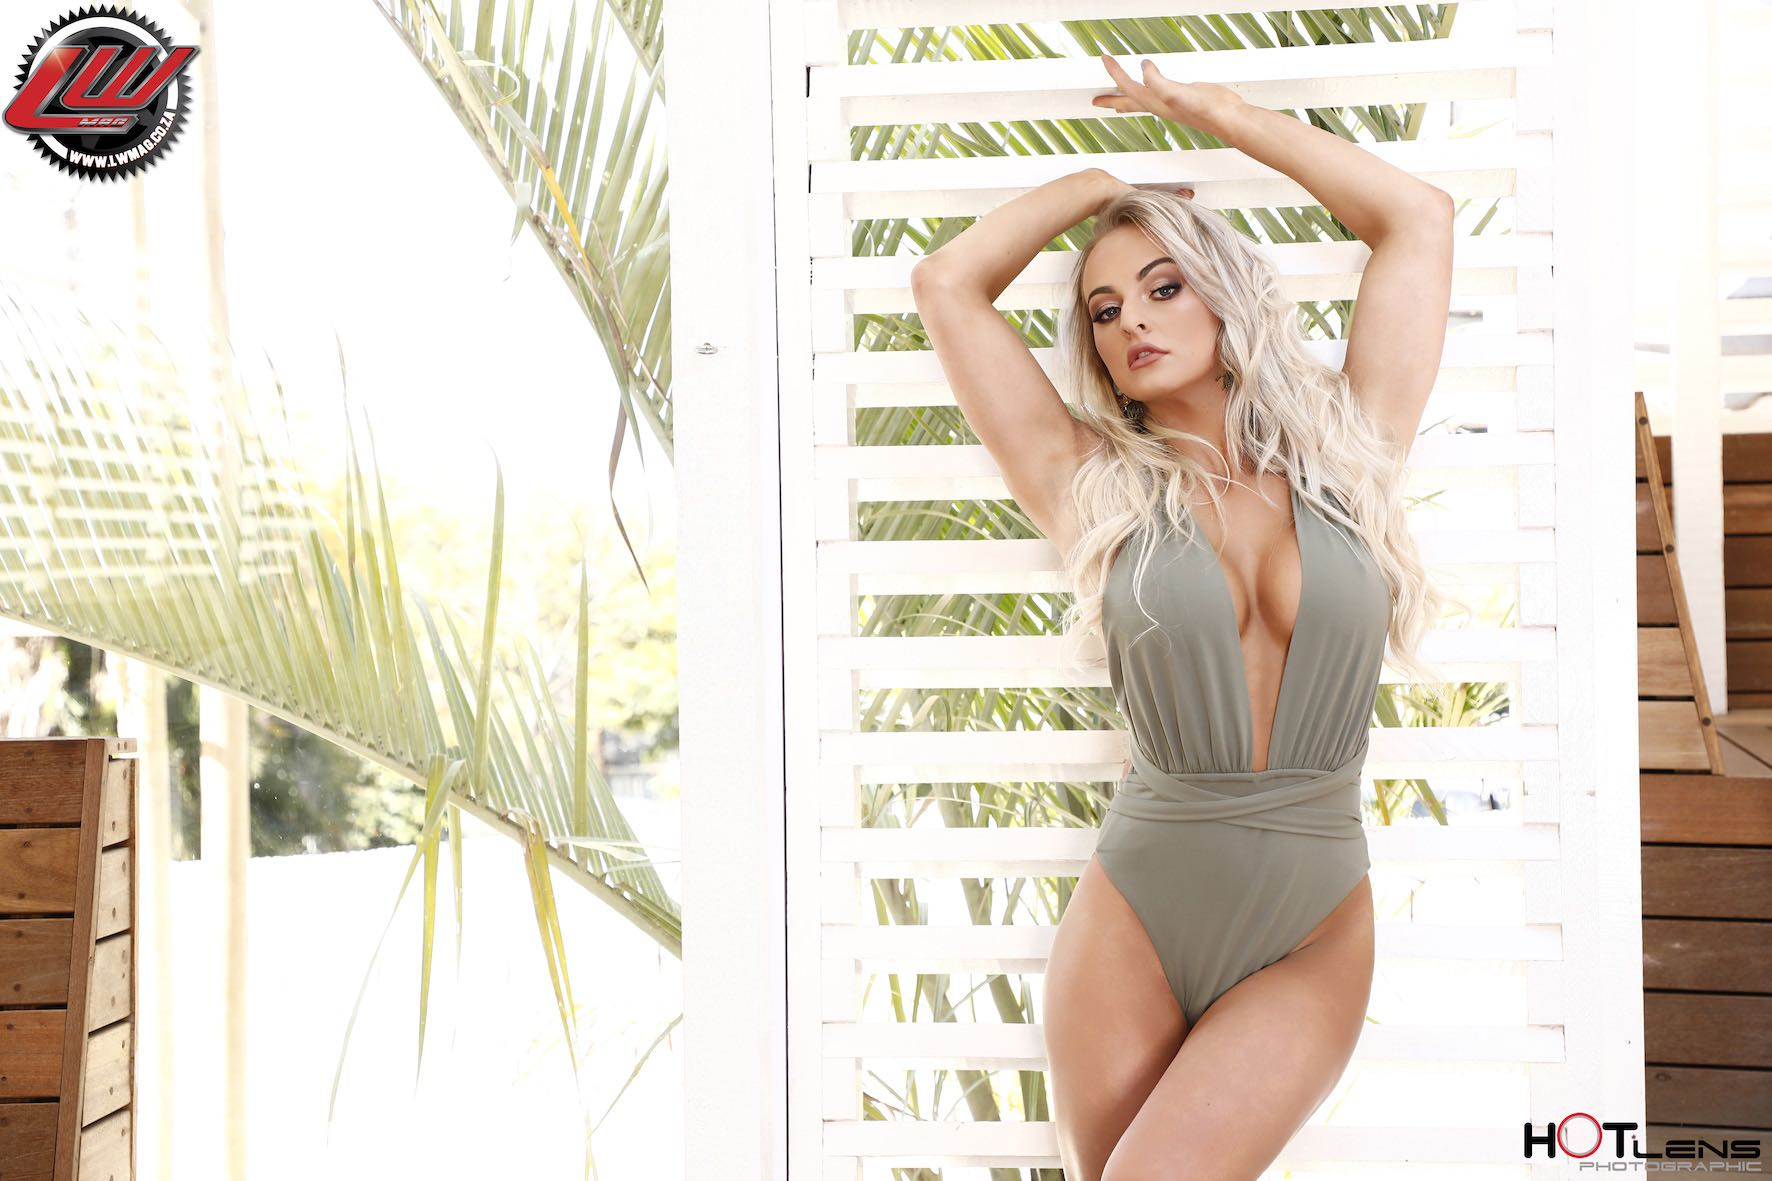 Our South African Babes feature with Lizandi Blignault